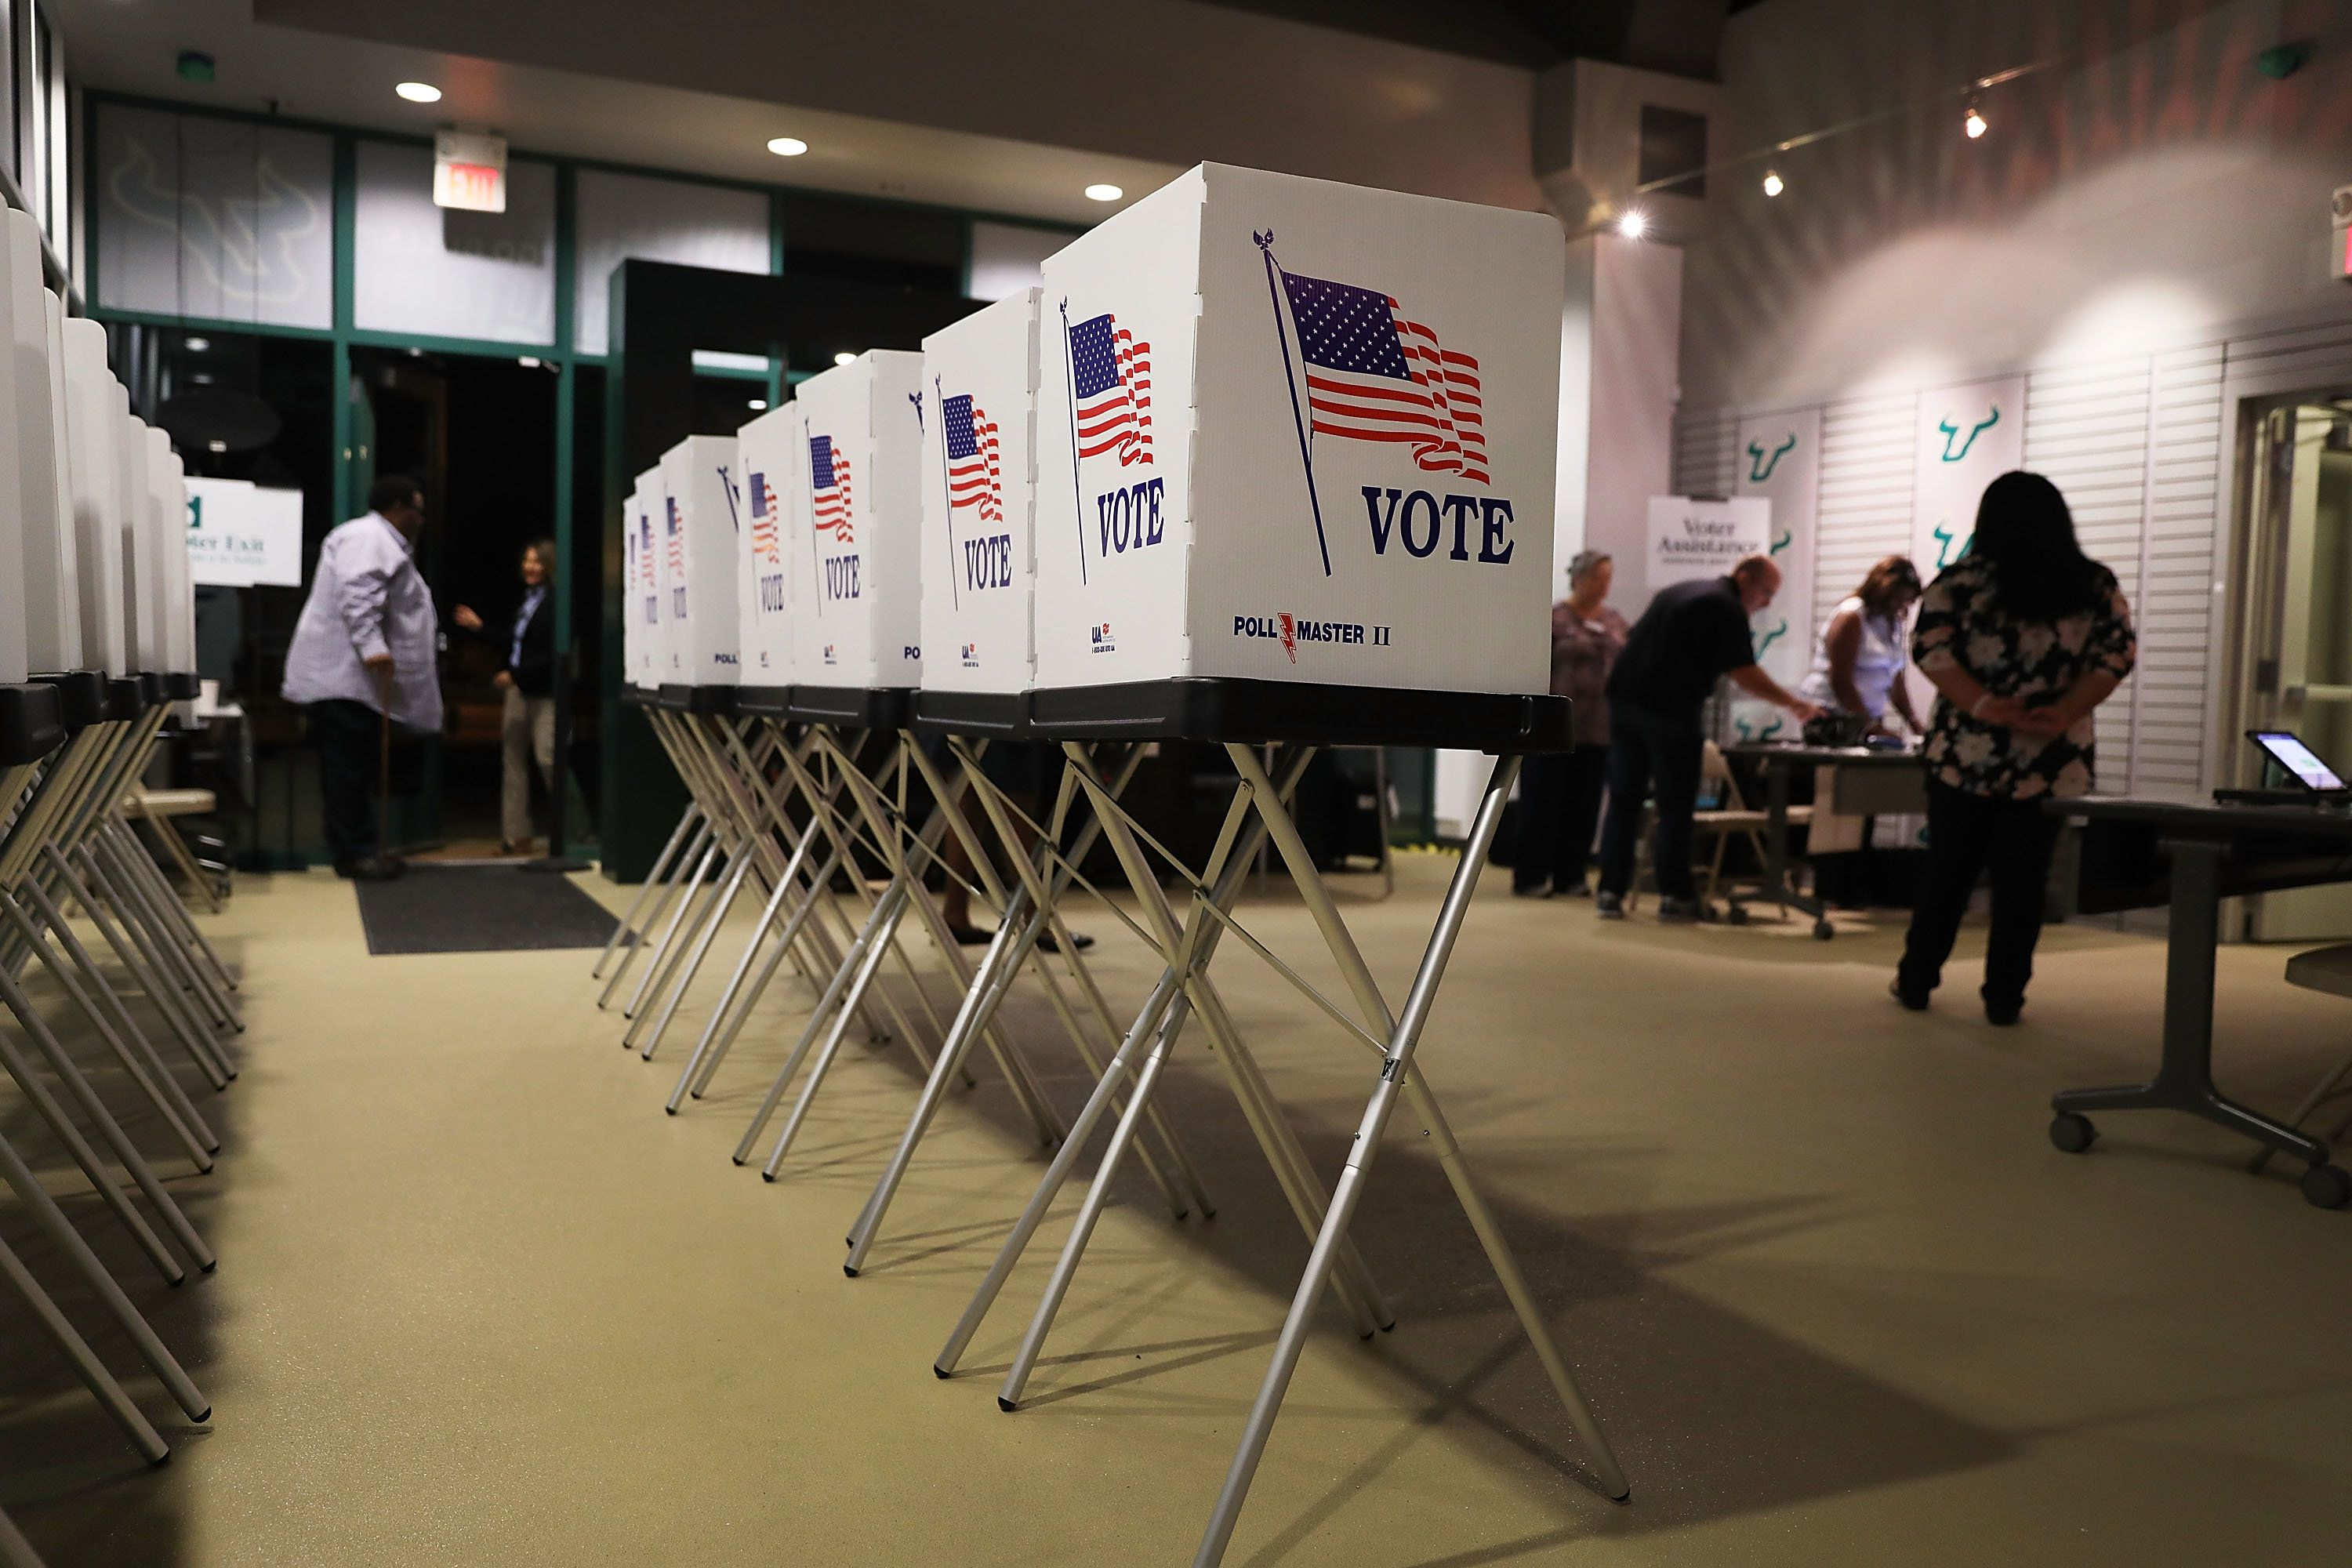 TAMPA, FL - OCTOBER 22:  Voting booths are setup at the Yuengling center on the campus of University of South Florida as workers prepare to open the doors to early voters on October 22, 2018 in Tampa, Florida. Florida voters head to the polls to cast their early ballots in the race for the Senate as well as the Governors seats.  (Photo by Joe Raedle/Getty Images)